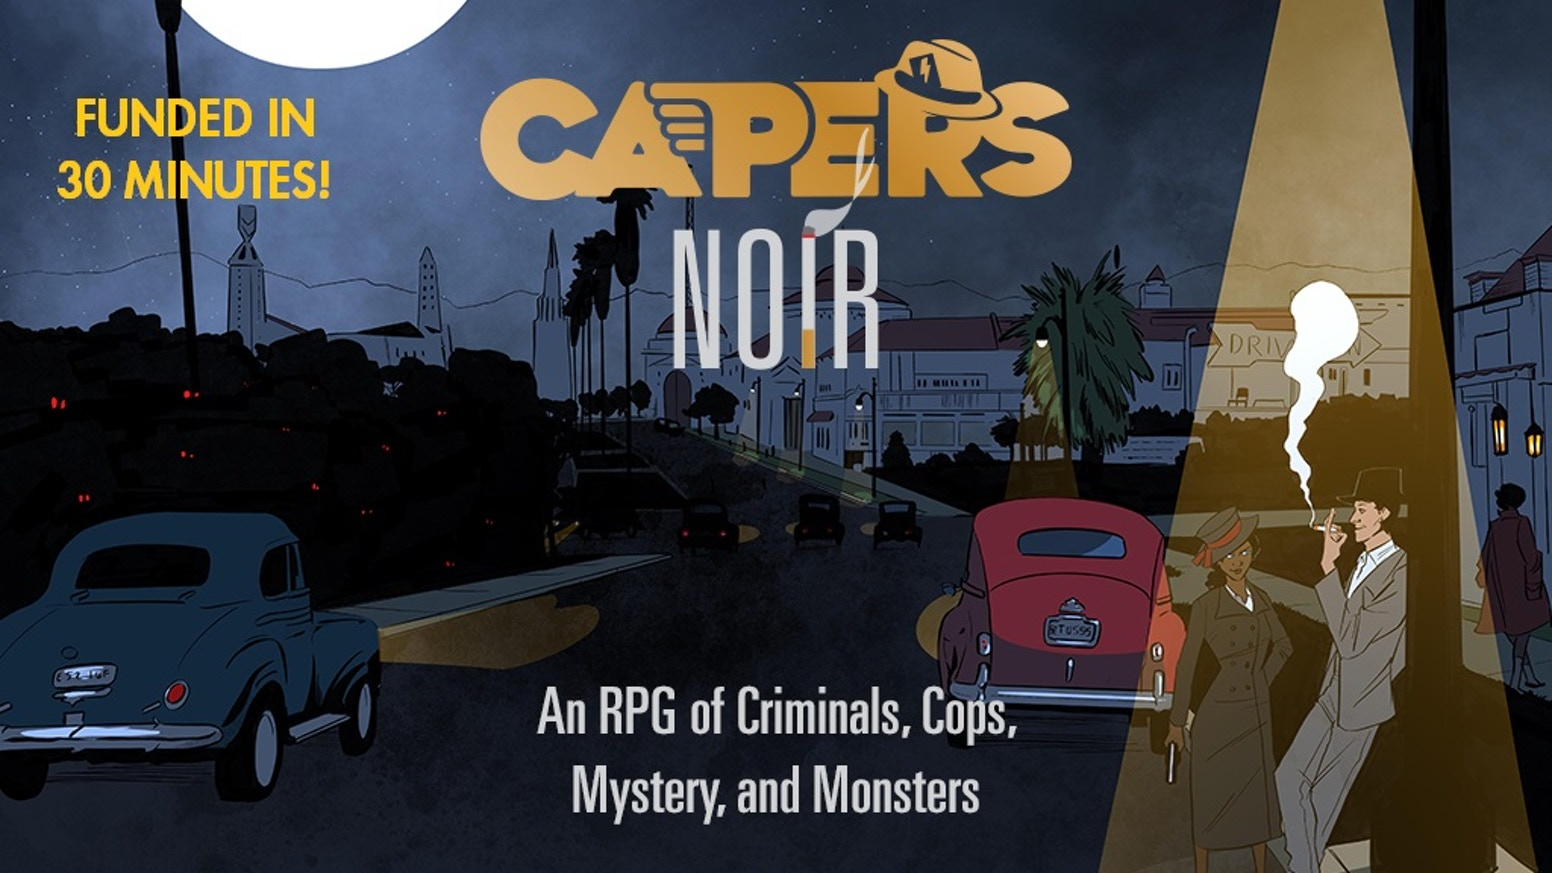 An RPG of Criminals, Cops, Mystery, and Monsters...with Super-Powers!